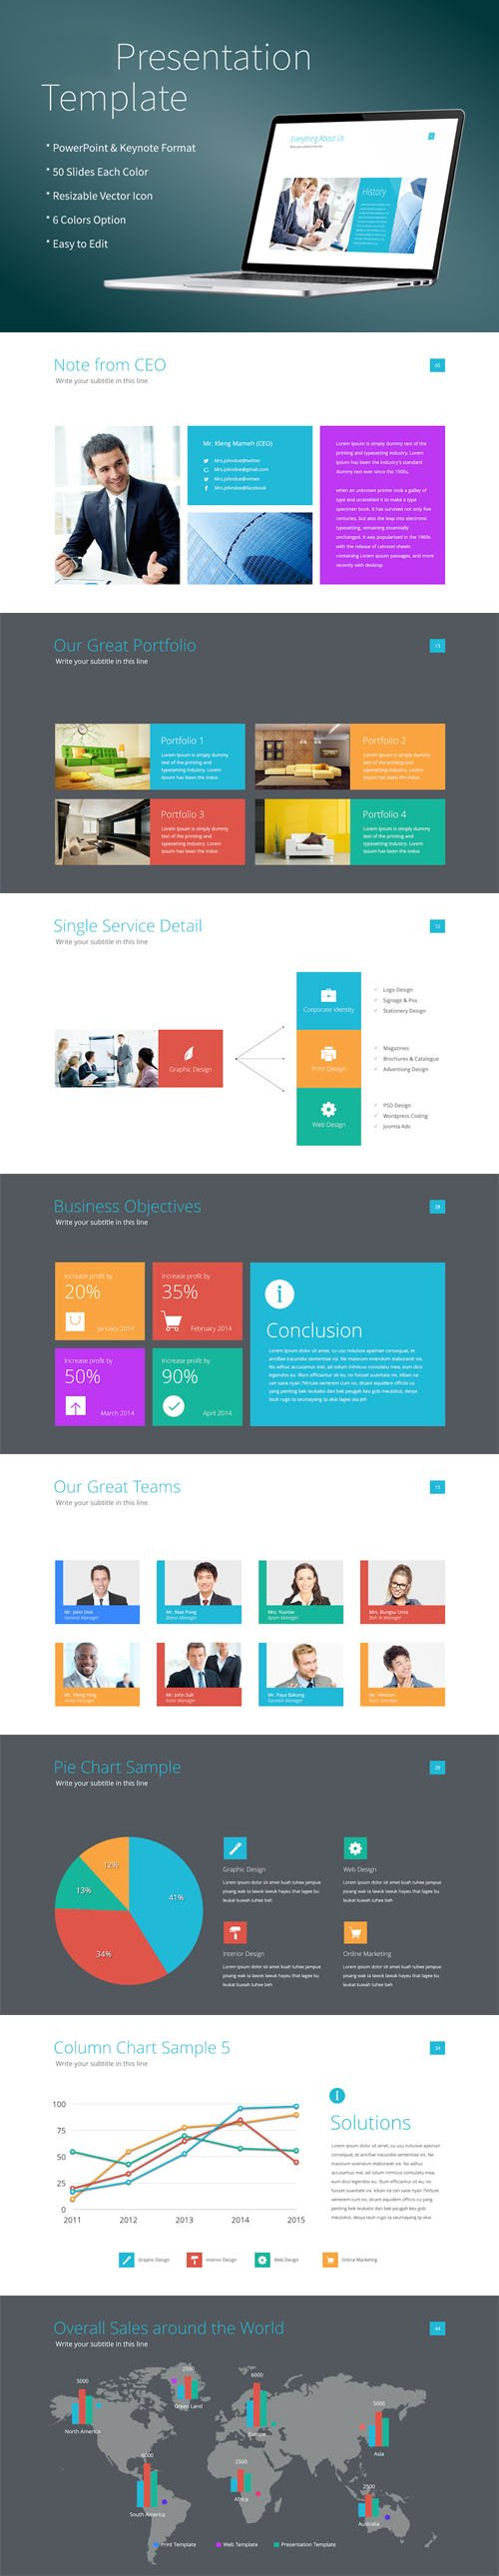 Modern & Clean Style Presentation Templates for Powerpoint & Keynote